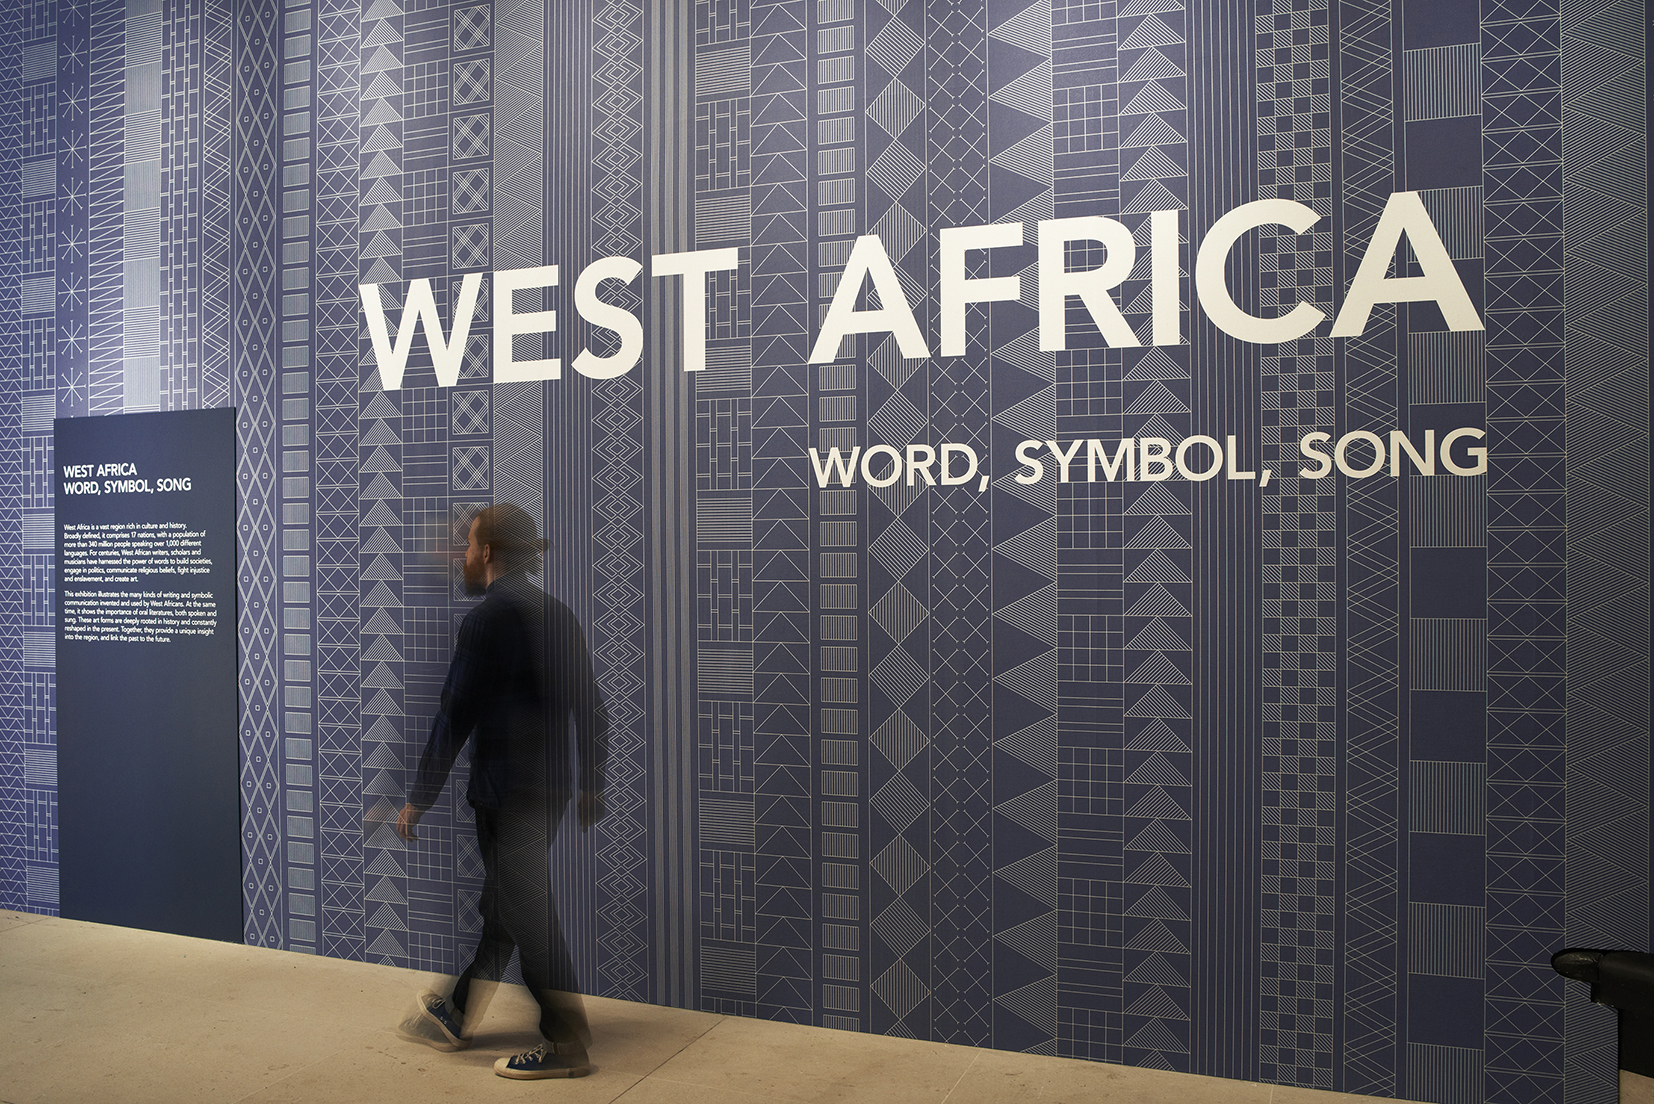 West Africa: Word, Symbol, Song